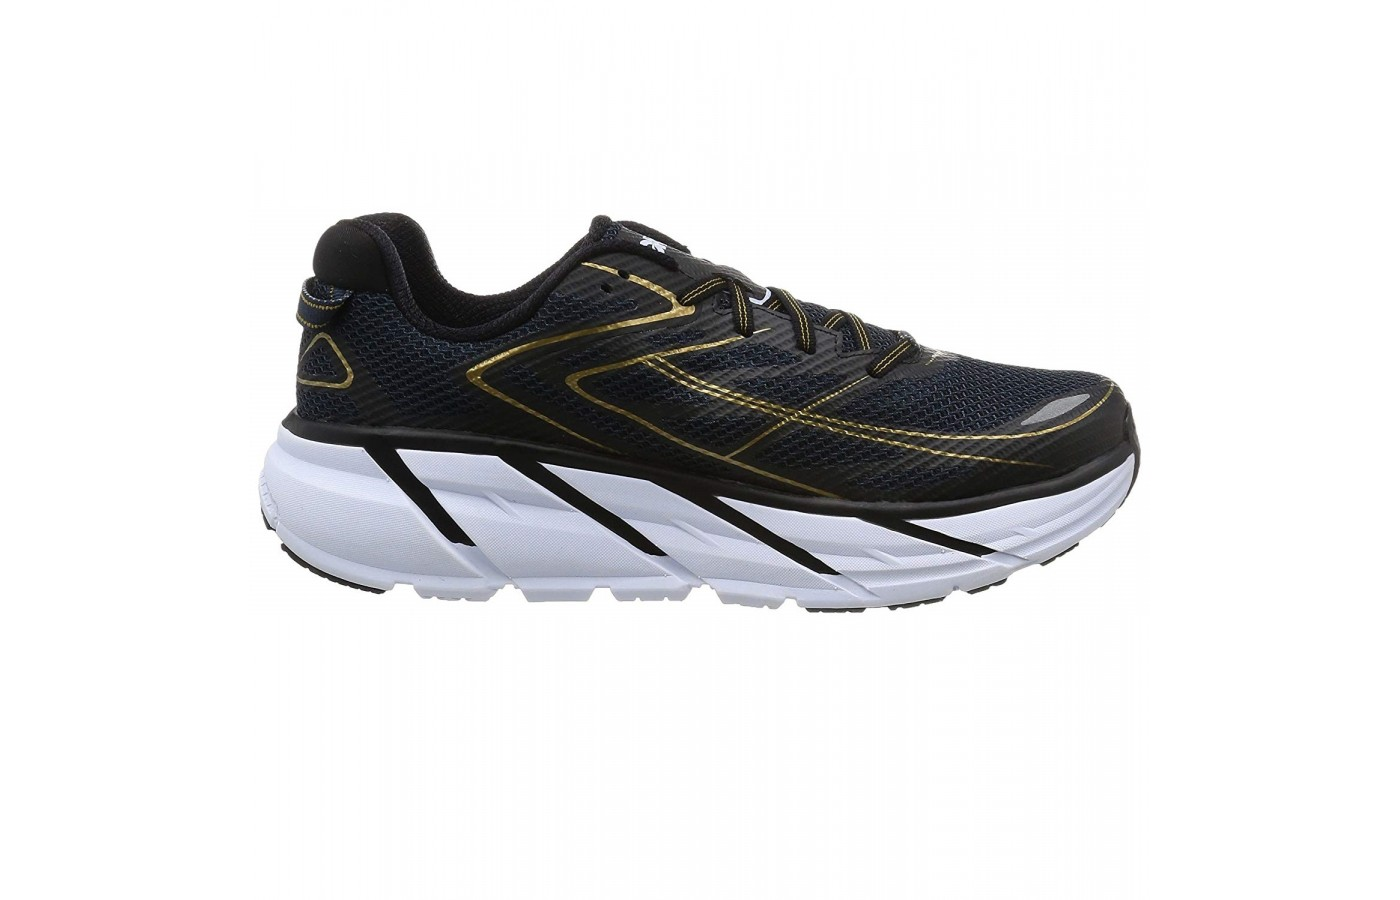 The Hoka Clifton 3 offers full length midsoles for more impact absorption and support.